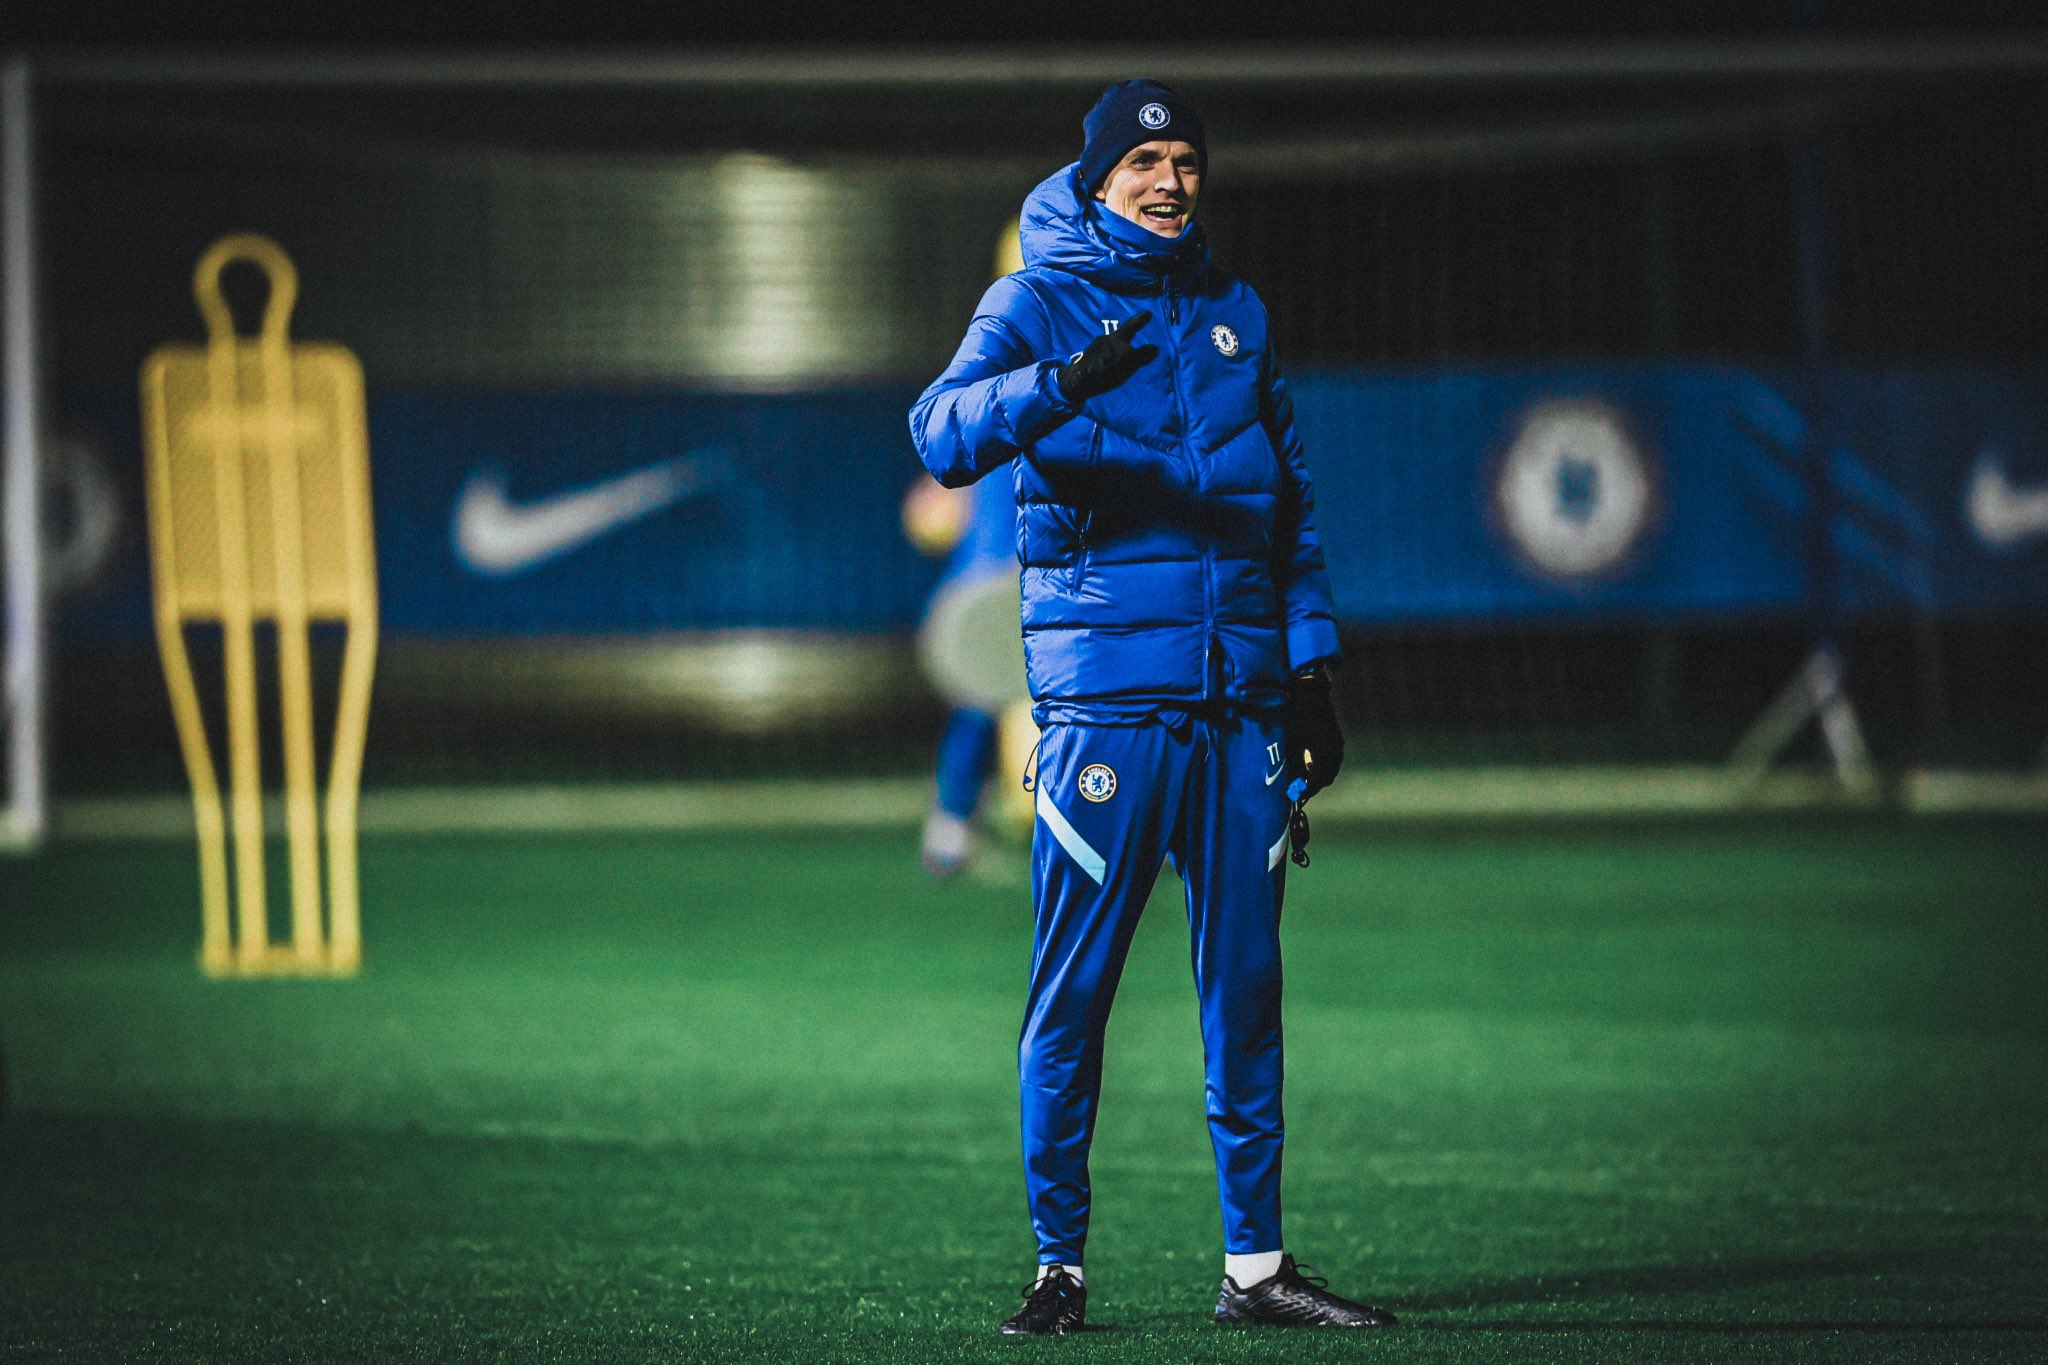 Thomas Tuchel is looking towards the future with Chelsea